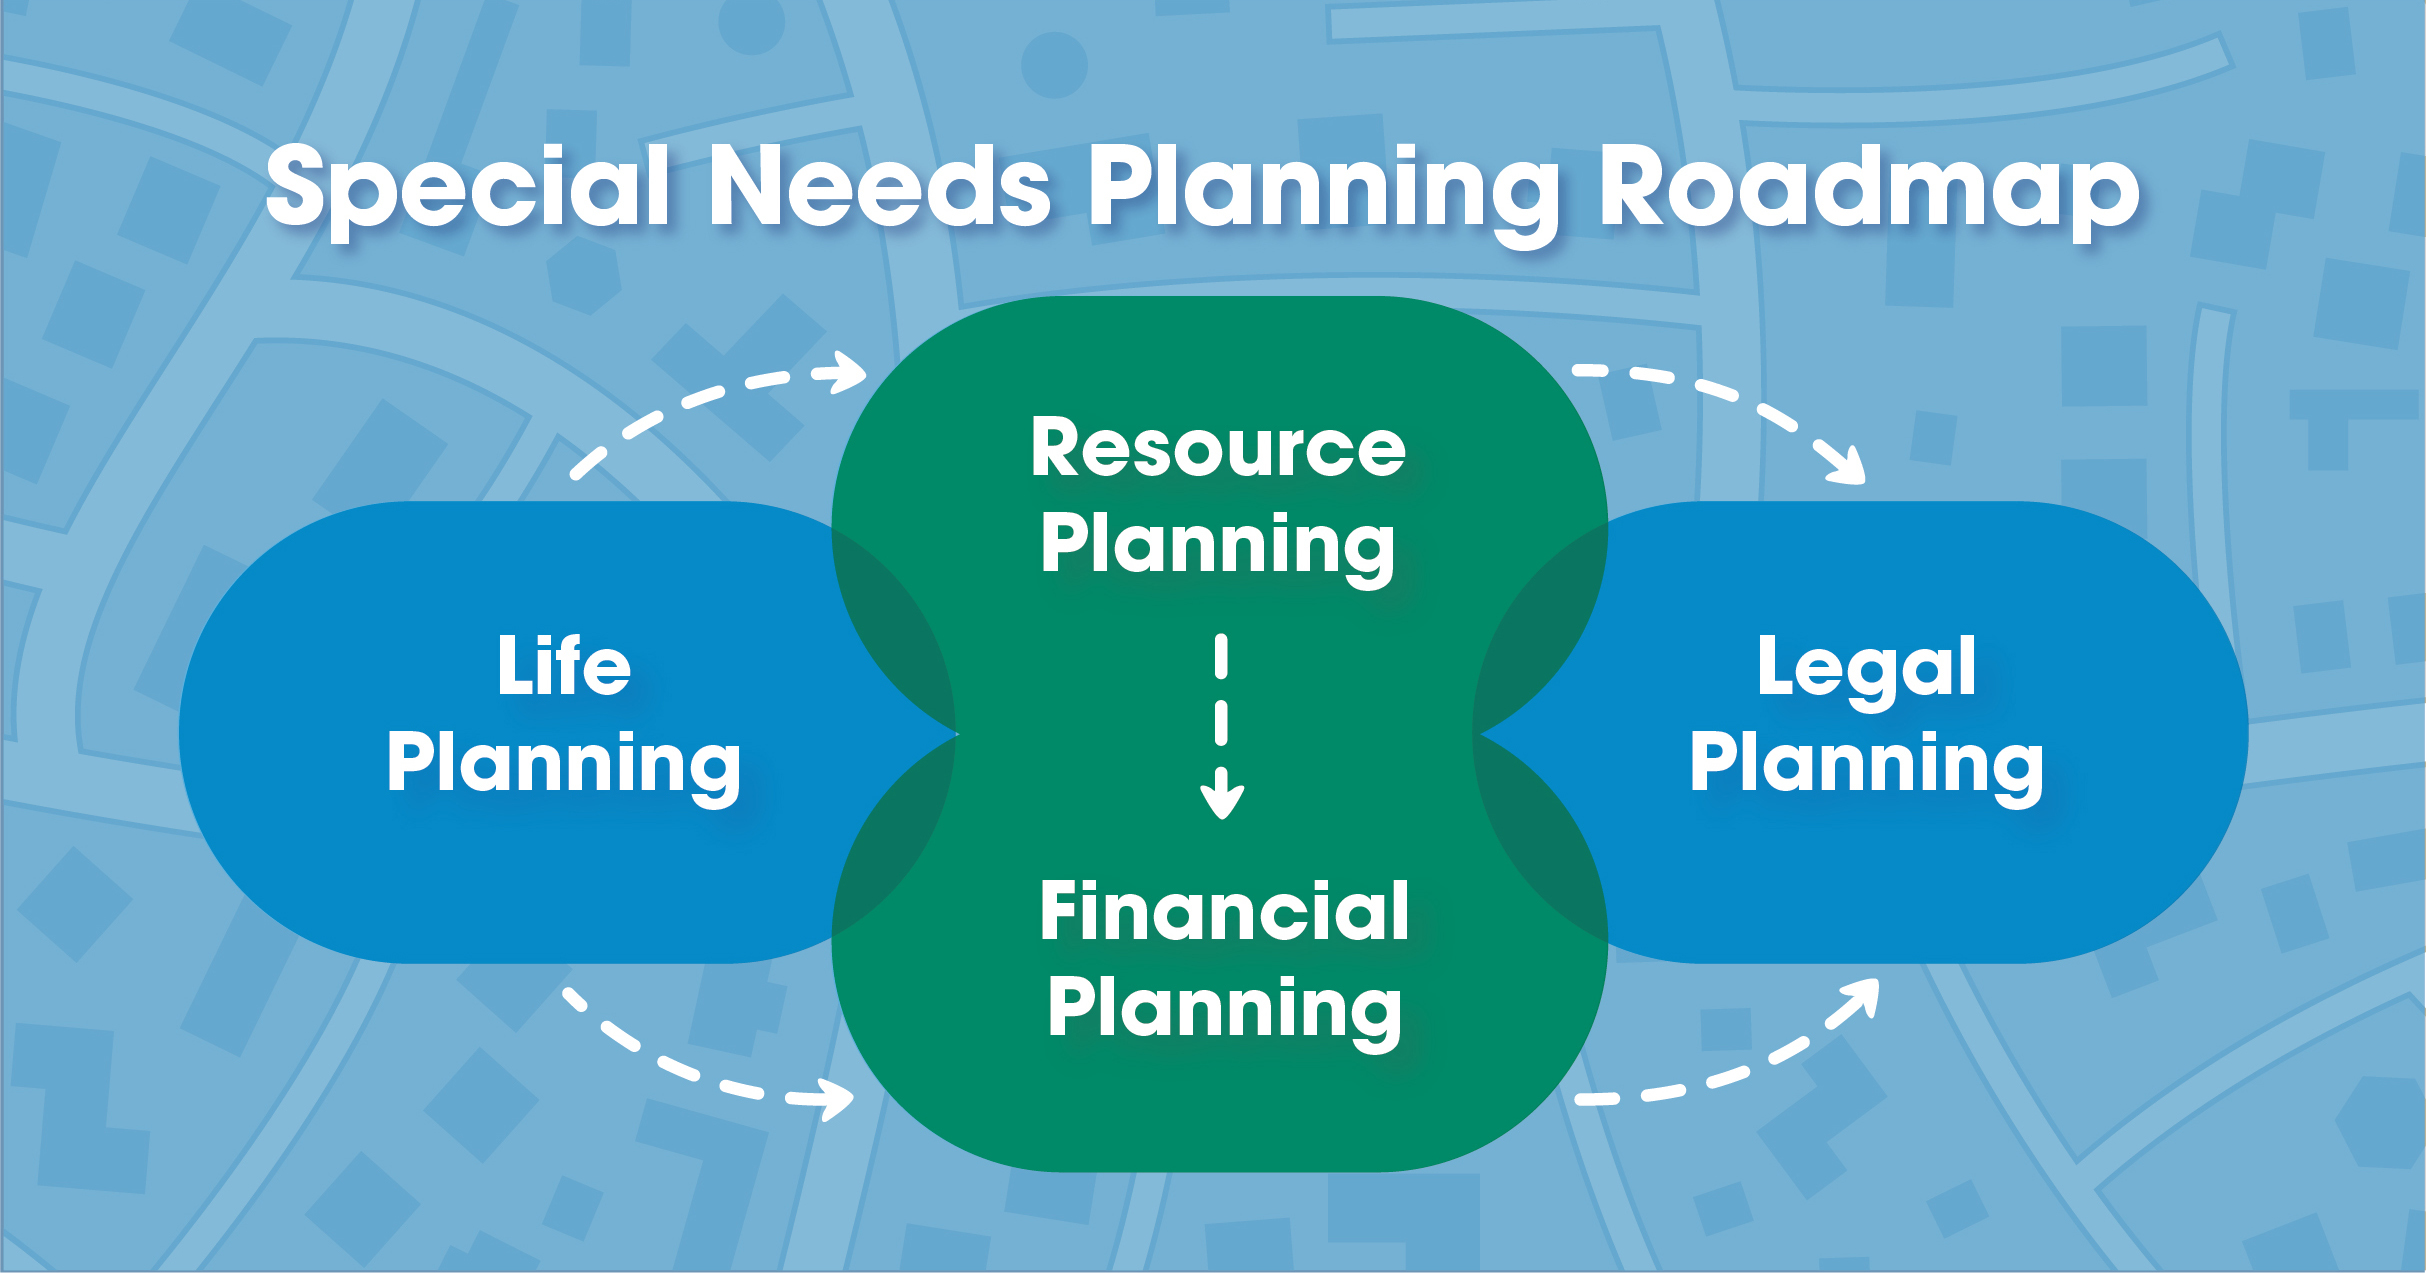 Special Needs Roadmap